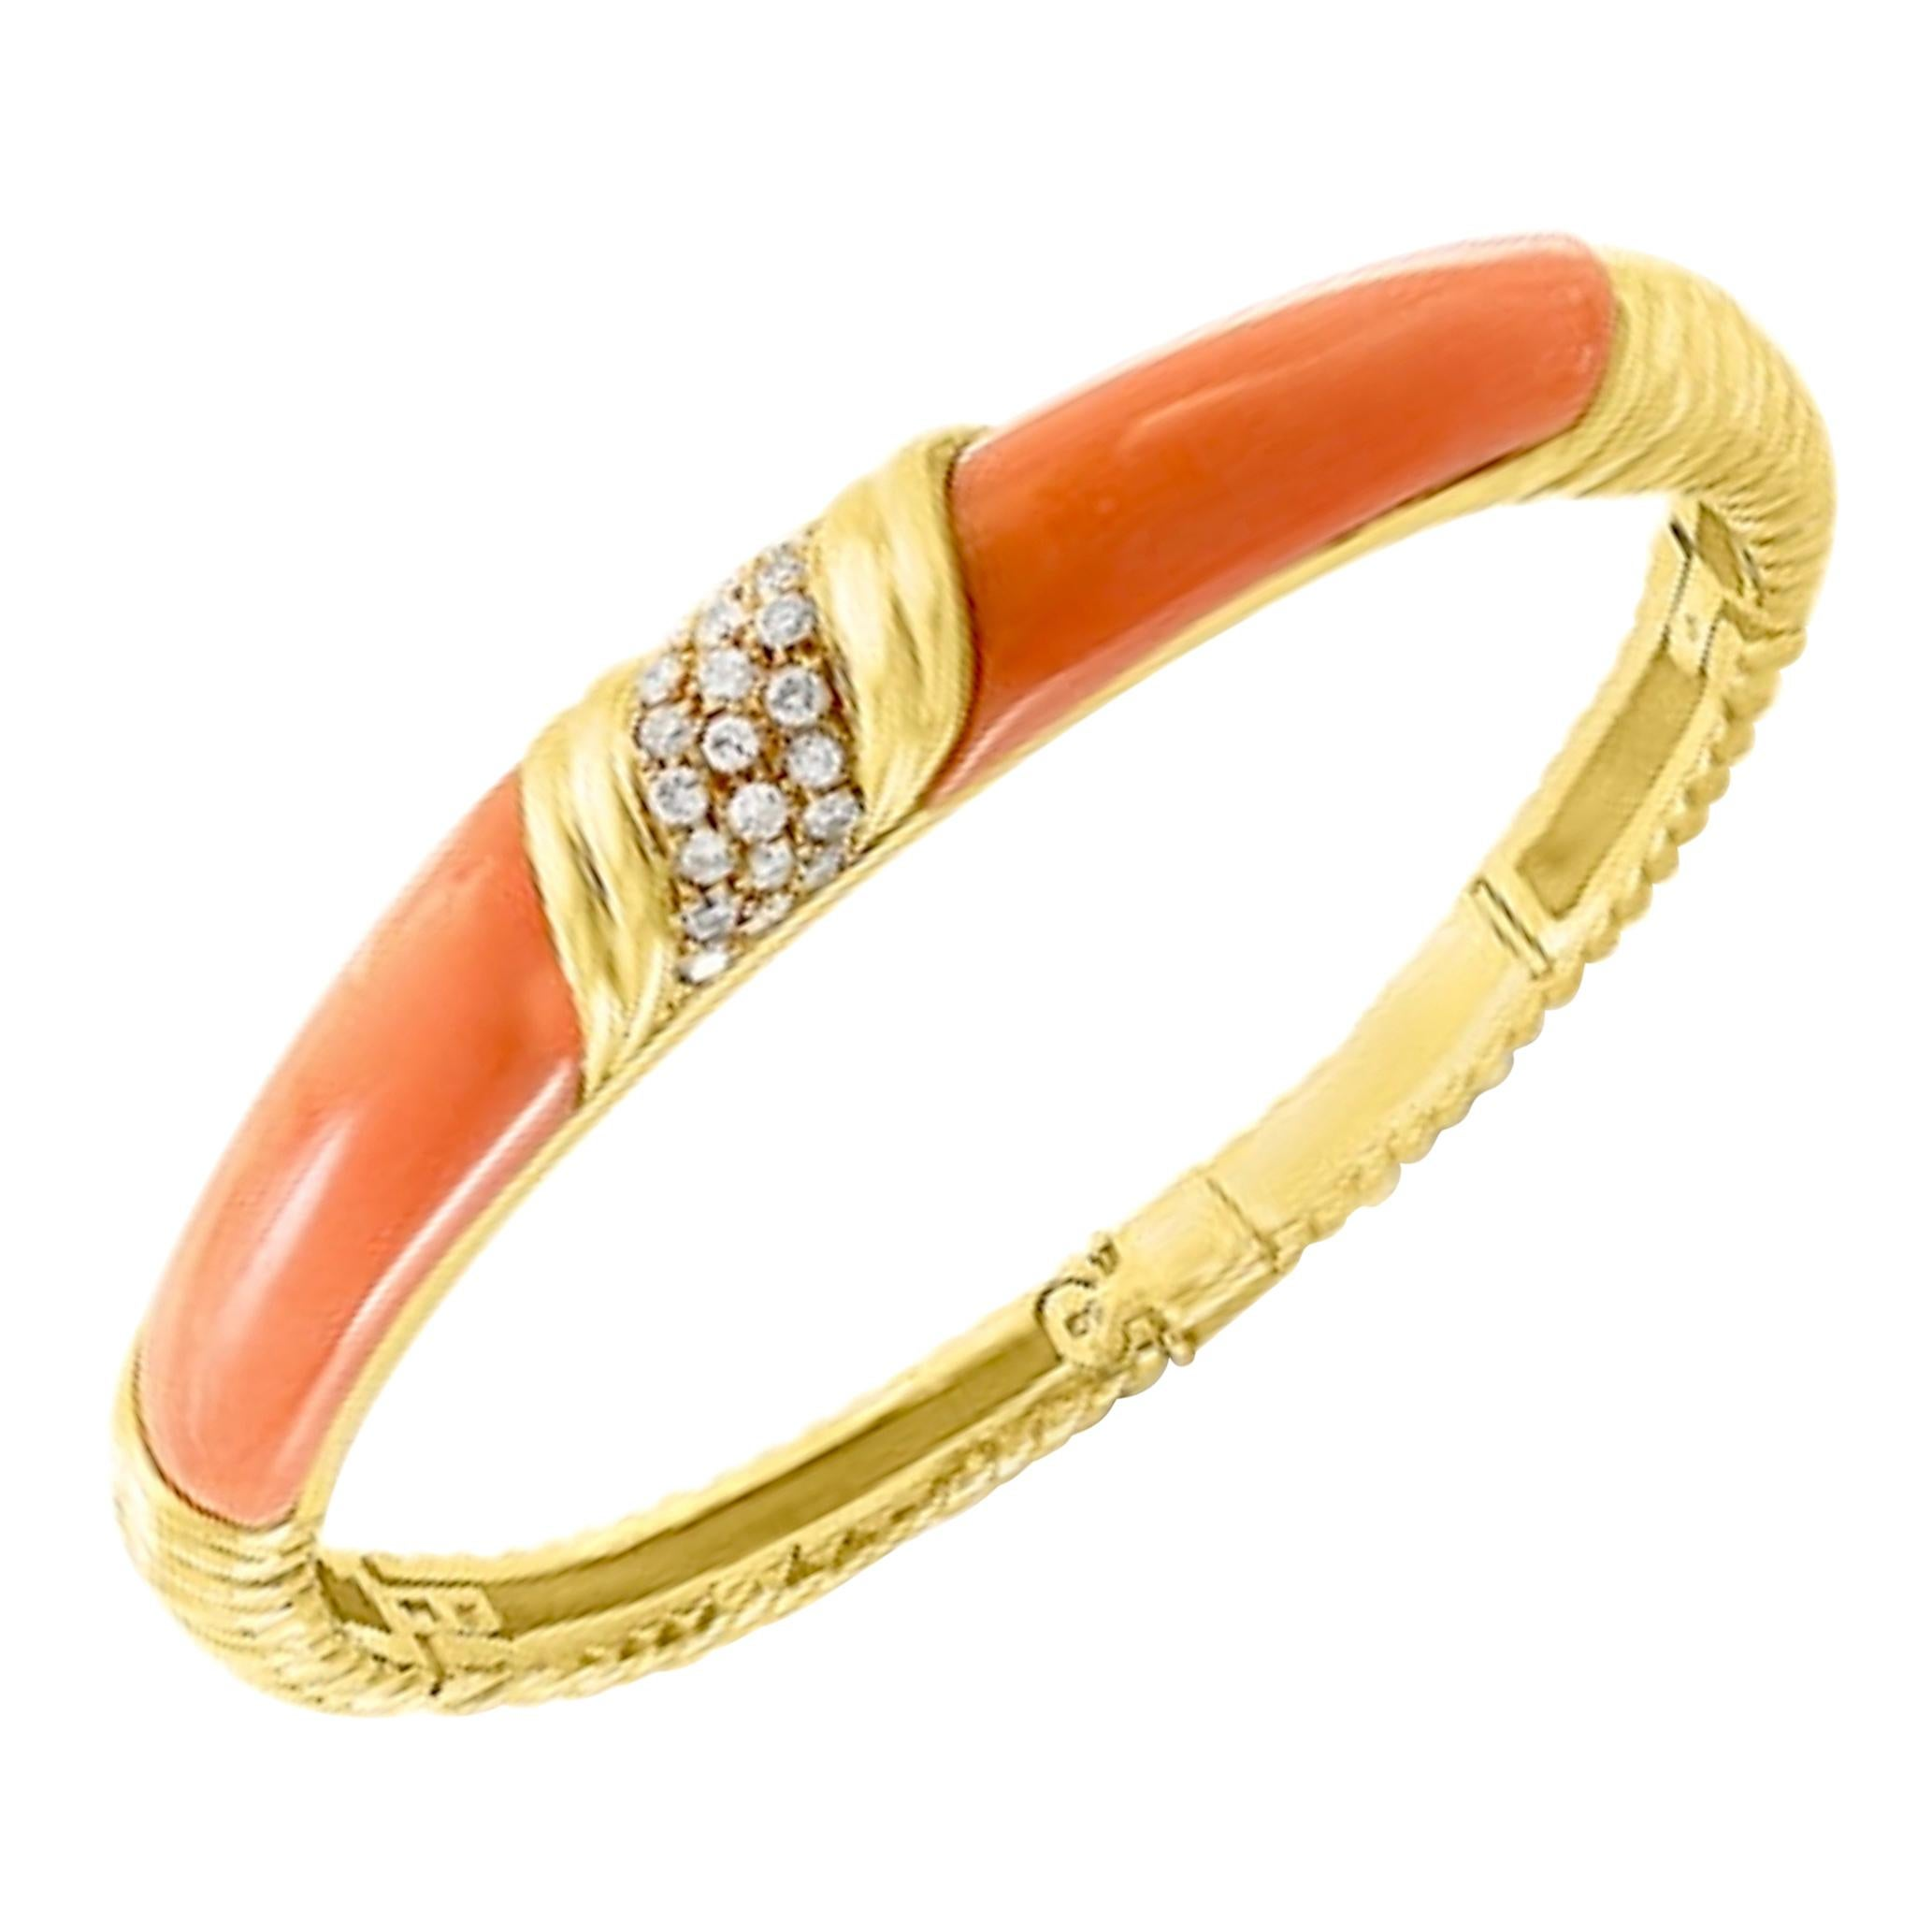 Natural Pink Coral and Diamond Cuff Bangle Bracelet in 18 Karat Yellow Gold